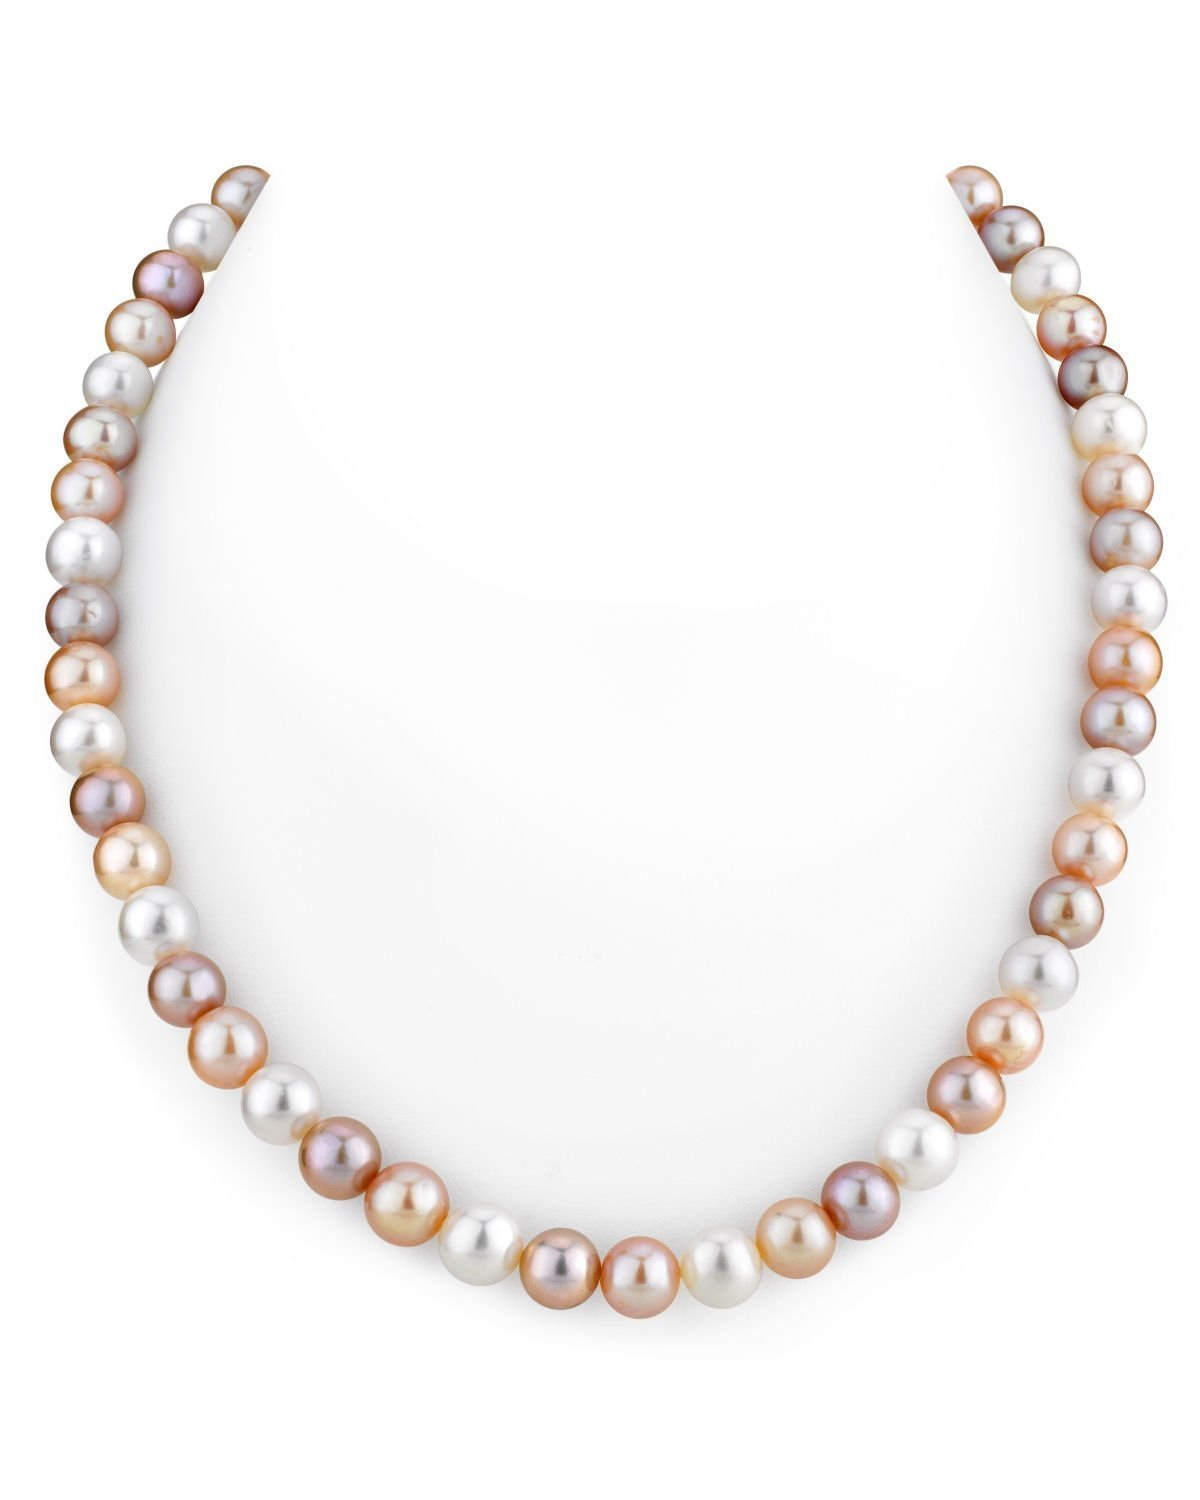 THE PEARL SOURCE 7-8mm AAA Quality Round Multicolor Freshwater Cultured Pearl Necklace for Women in 18'' Princess Length